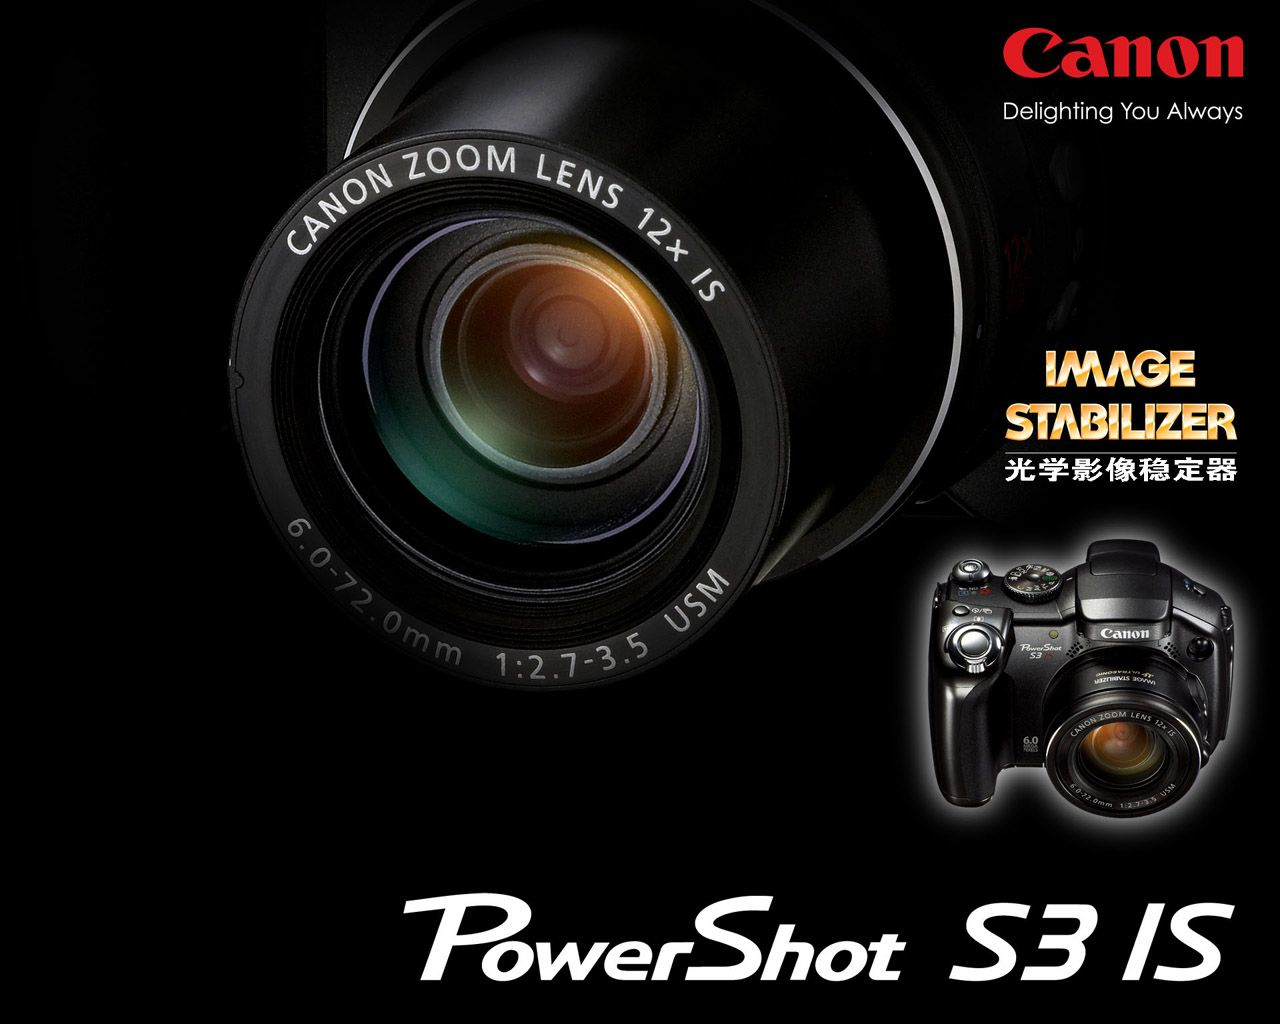 Canon Delighting You Always HD Wide Wallpaper For Widescreen Wallpapers